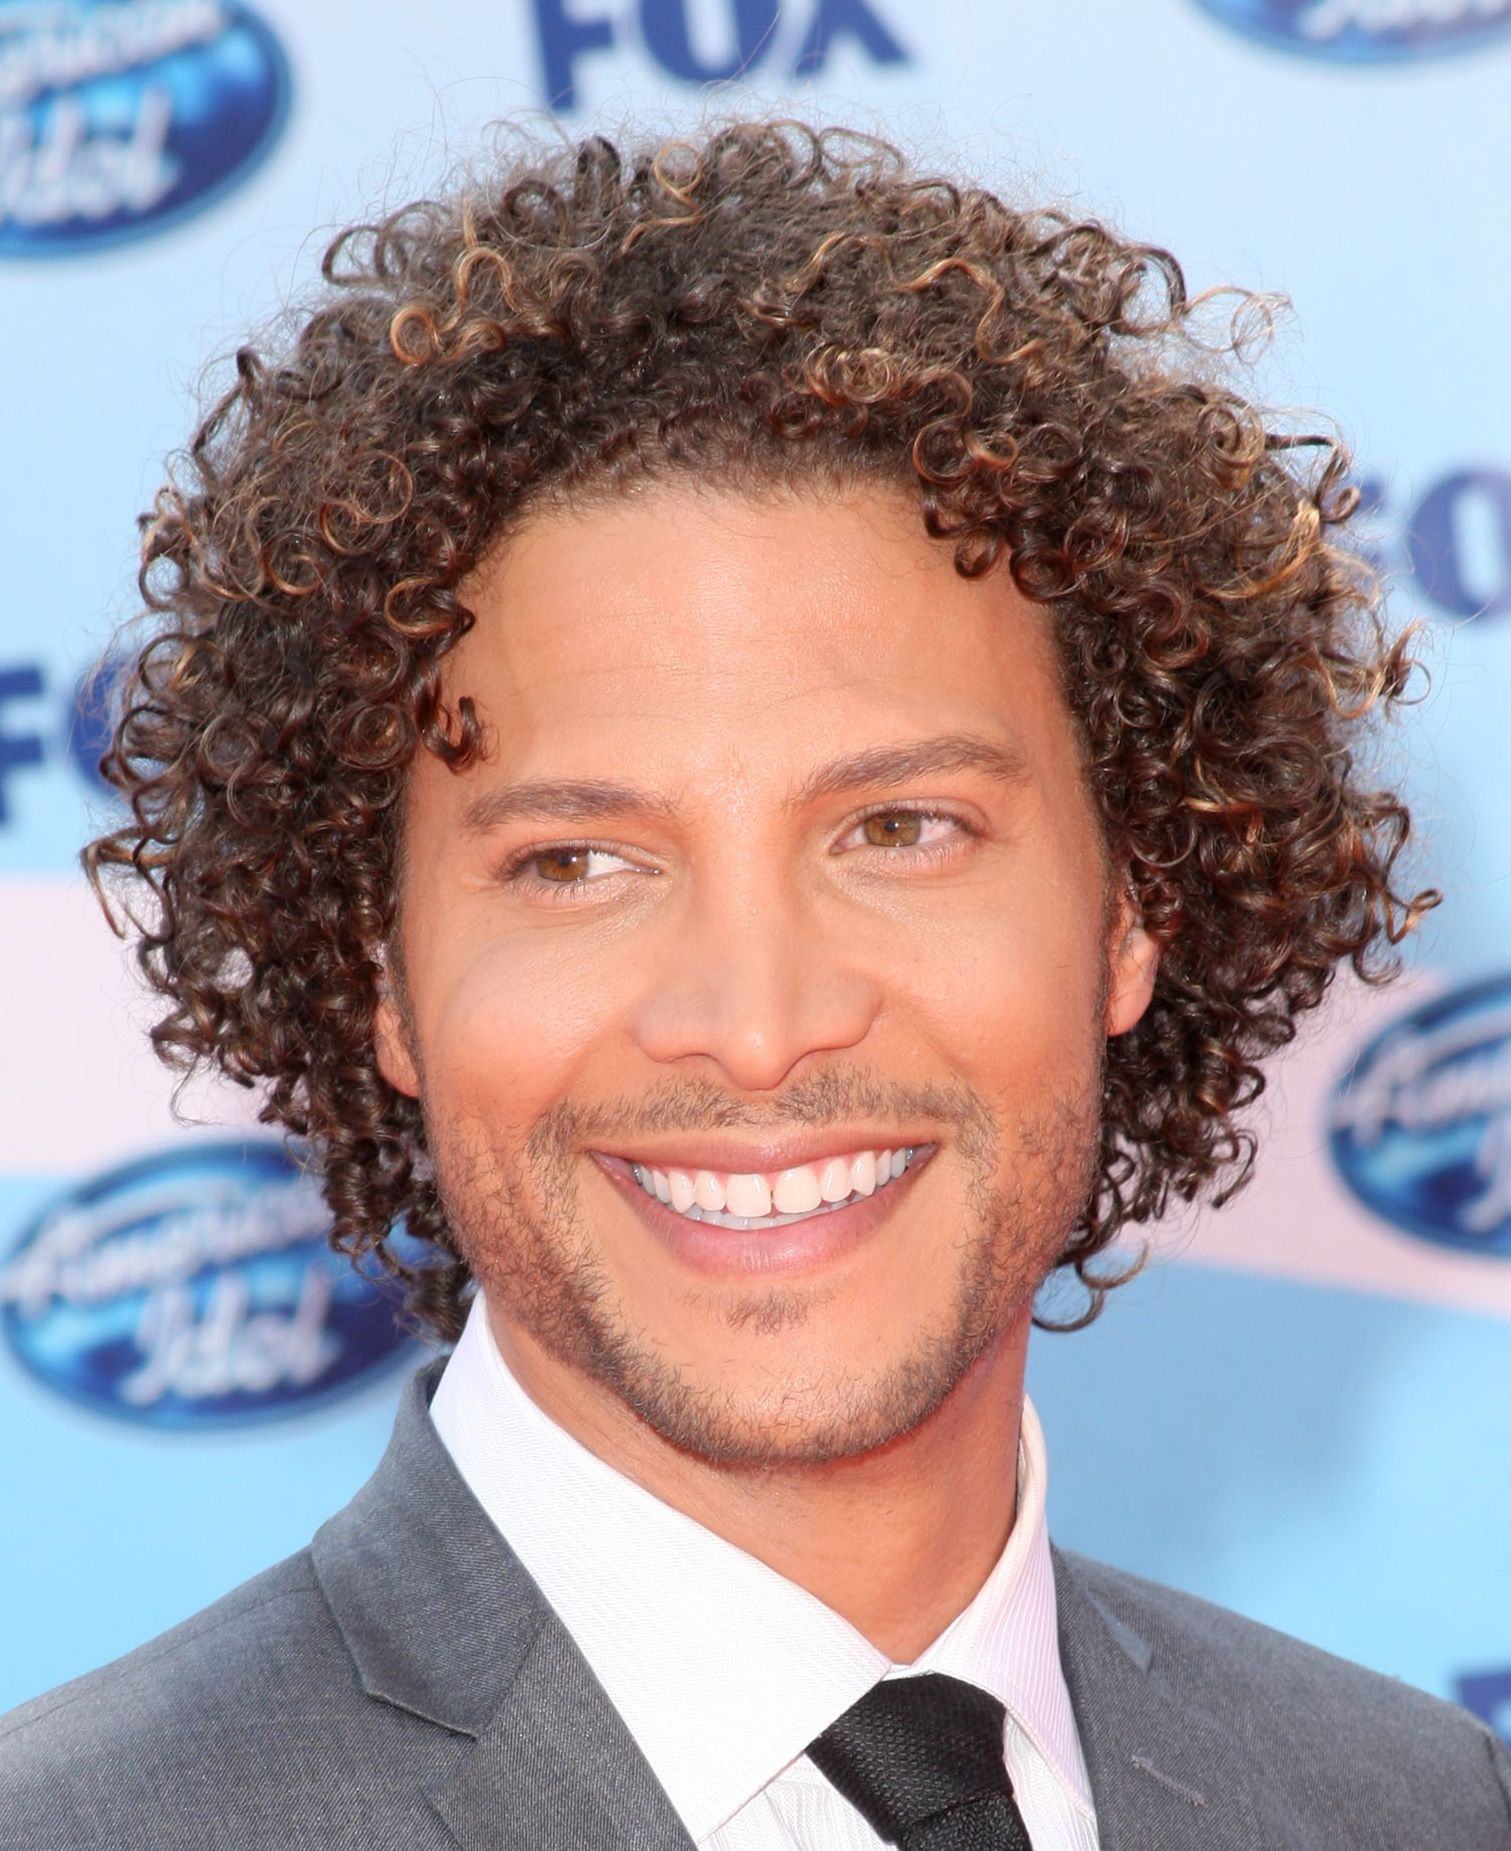 10 Famous Men With Curly Hair Curly Hair Men Curly Hair Styles Mens Hairstyles Curly